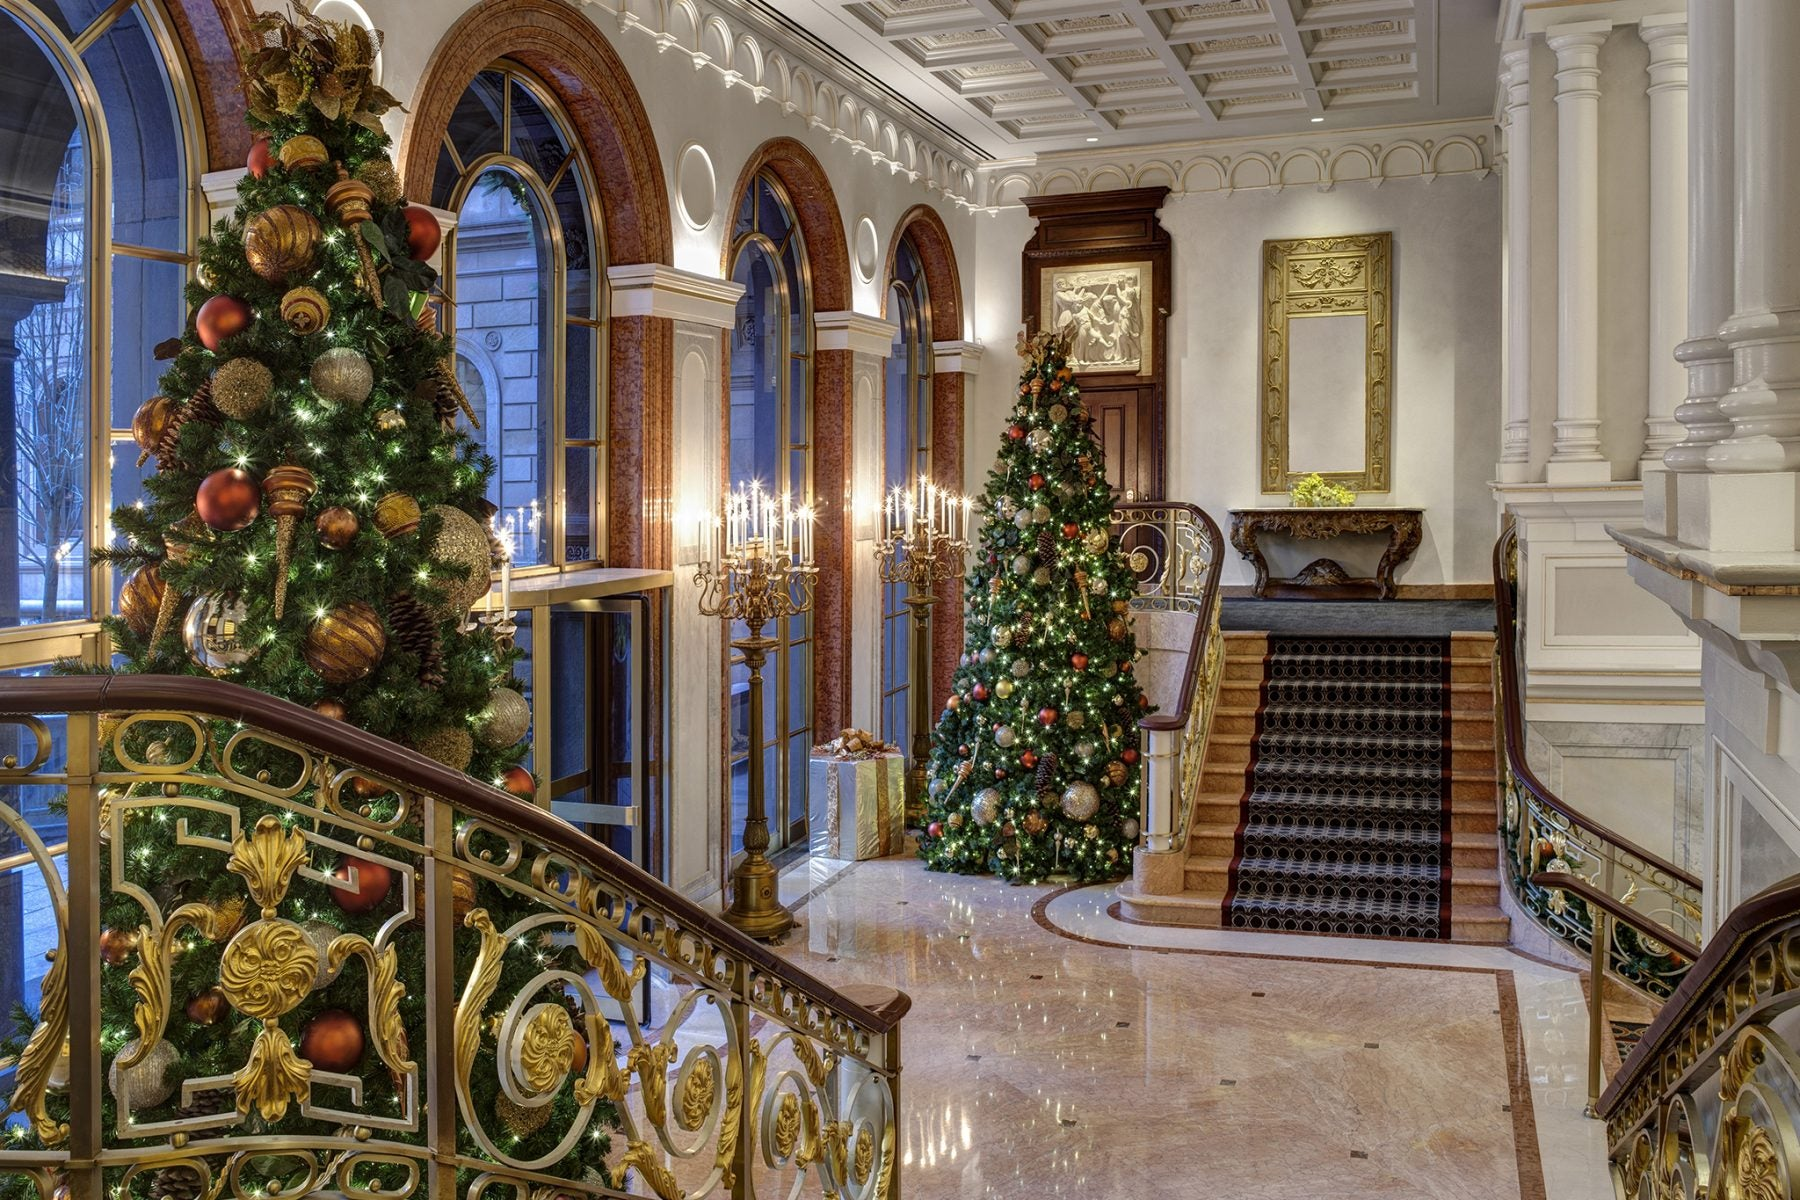 The Lotte New York Palace Hotel in New York City off Madison Avenue Decorates Elaborately for Holiday Travelers.